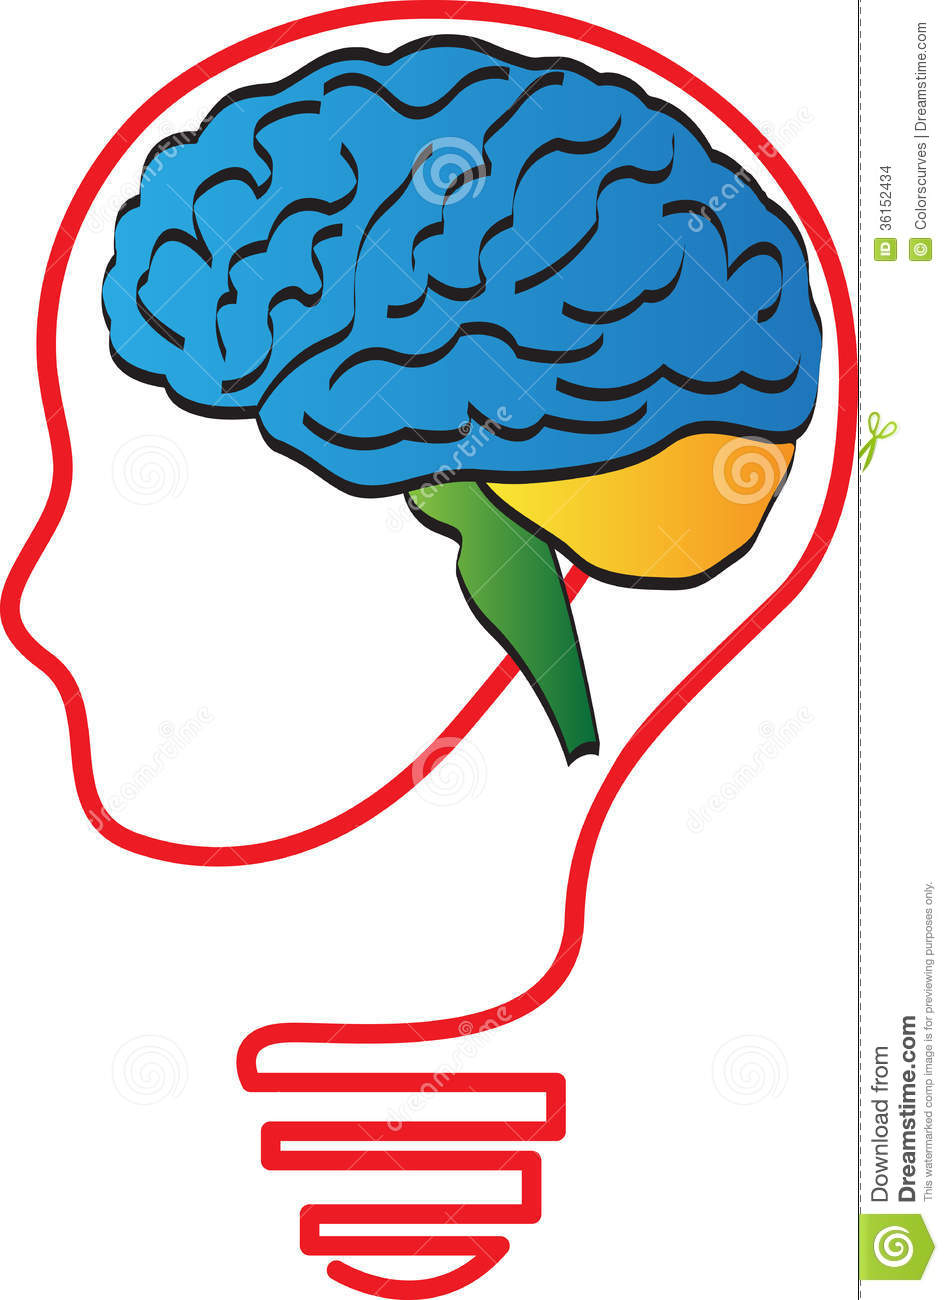 vector drawing represents brain head design.